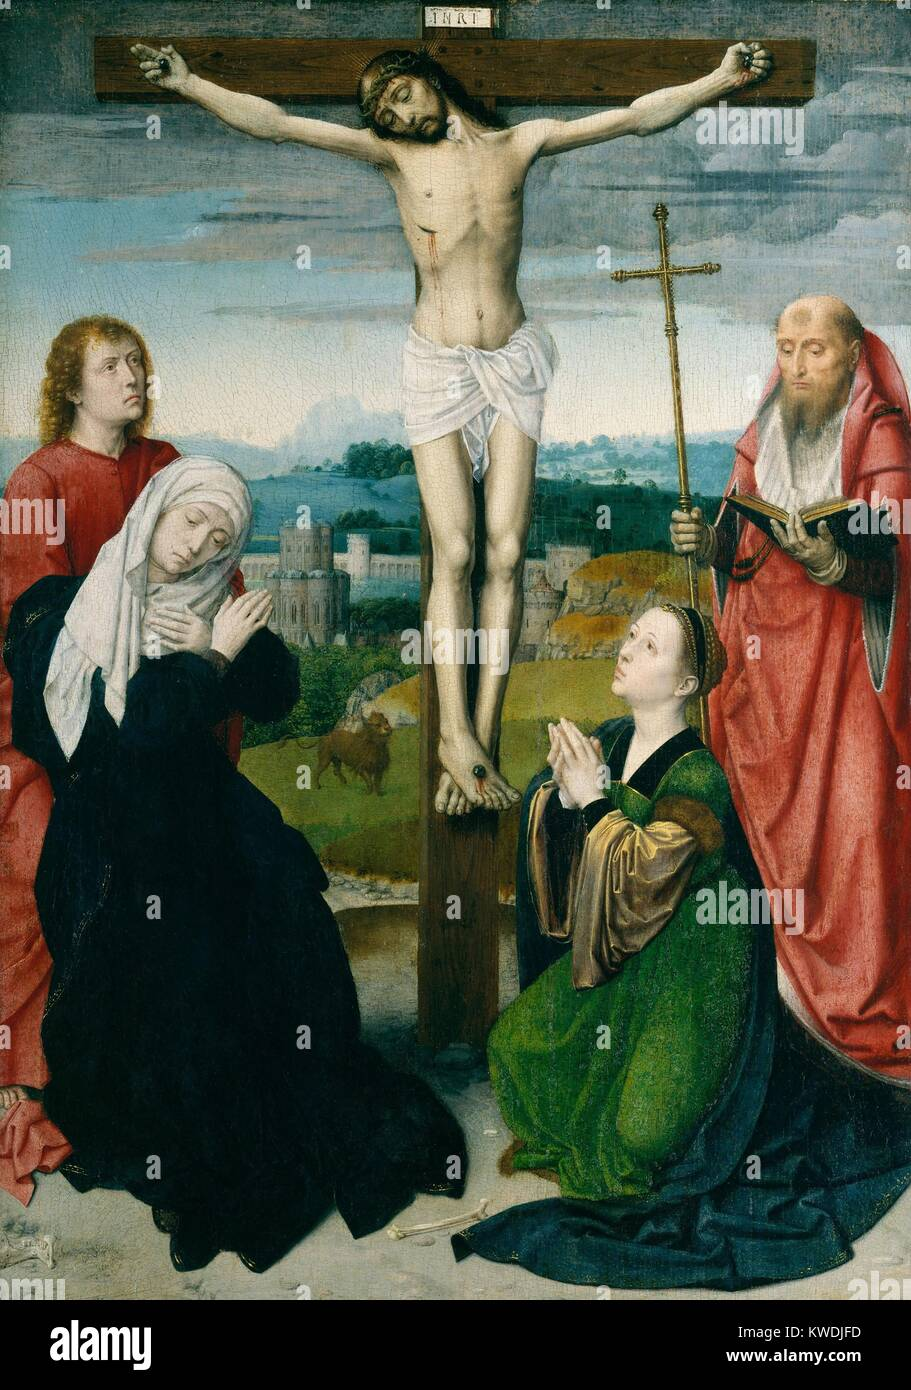 THE CRUCIFIXION, by Gerard David, 1495, Netherlandish, Northern Renaissance painting, oil on wood. Crucifixion includes - Stock Image